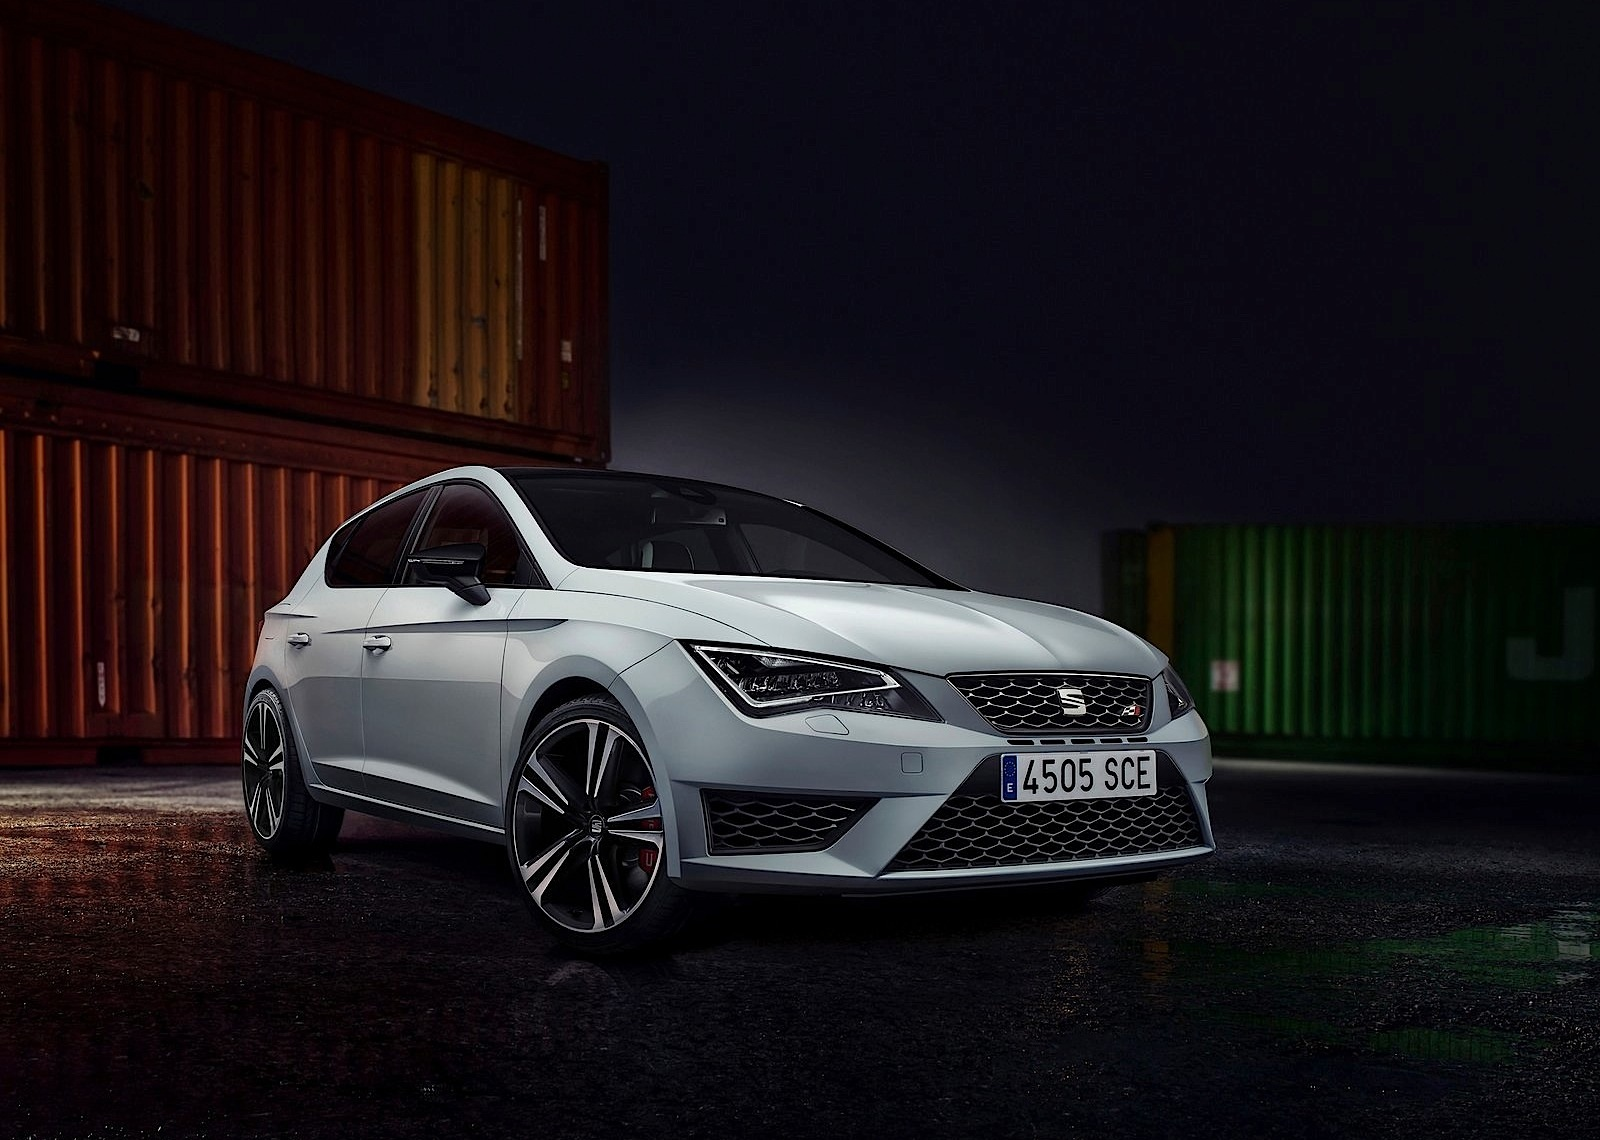 seat leon cupra specs 2013 2014 2015 2016 2017. Black Bedroom Furniture Sets. Home Design Ideas